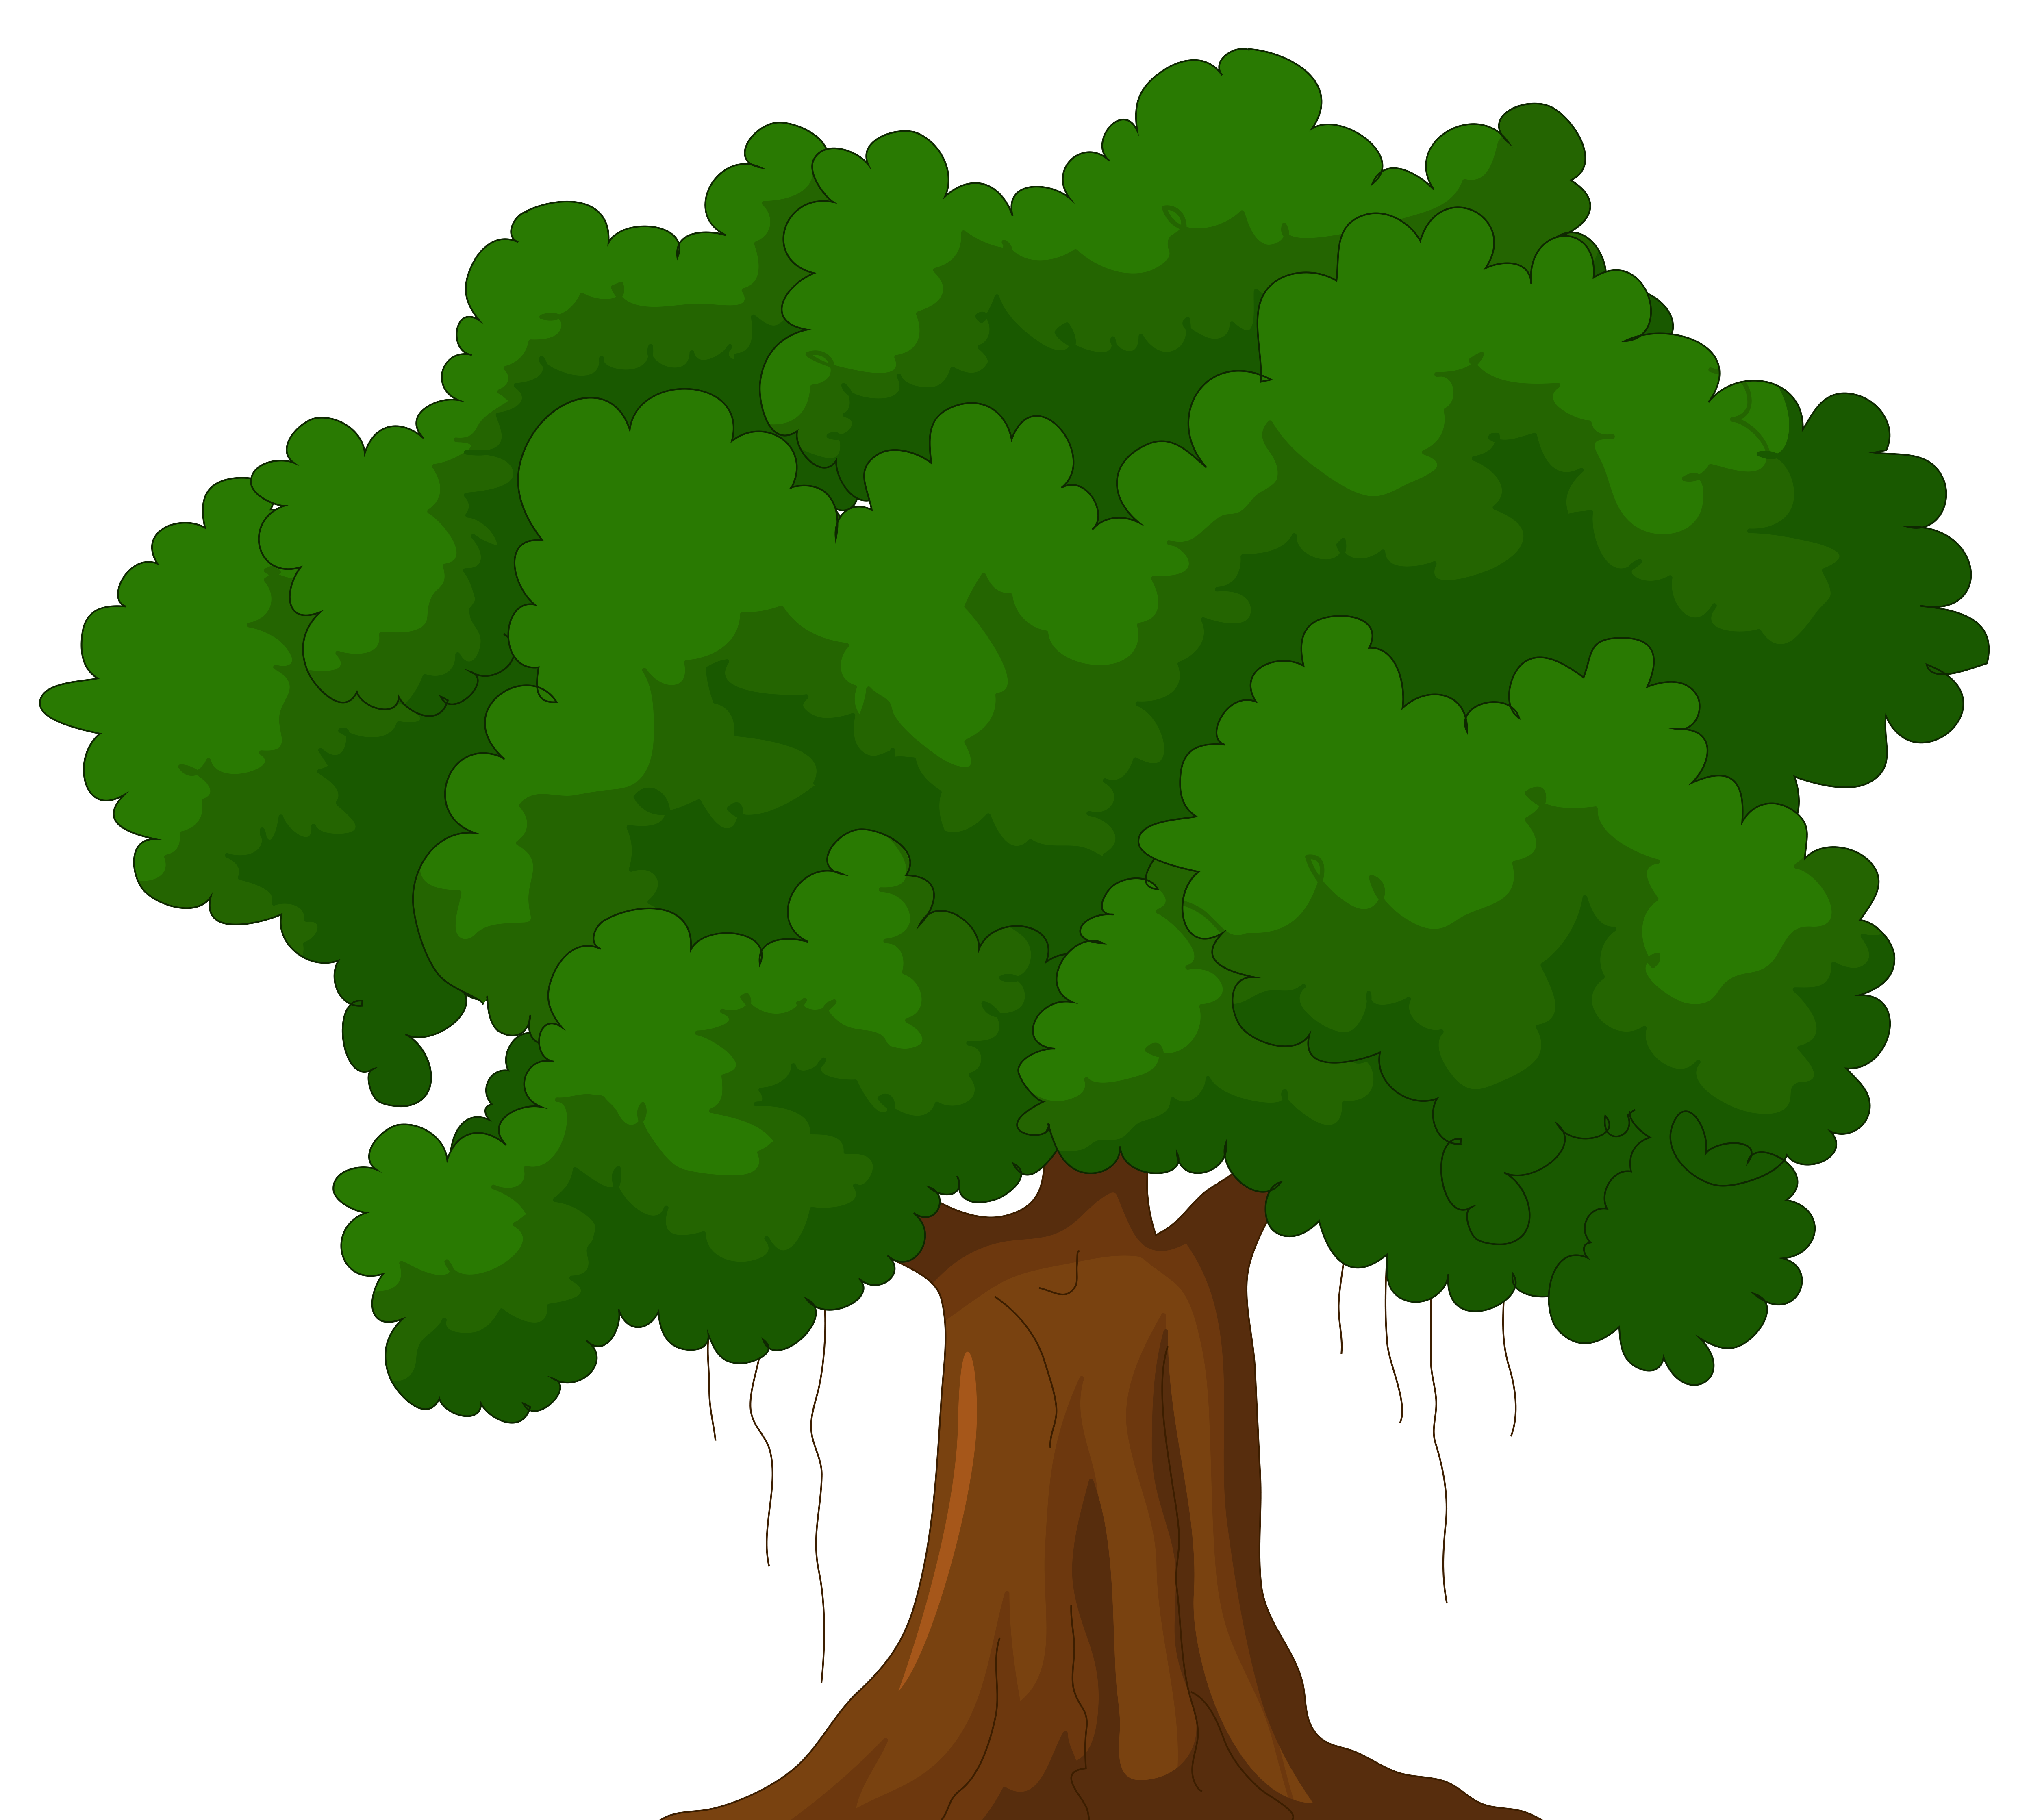 tree clipart at getdrawings com free for personal use tree clipart rh getdrawings com clipart of a tree near water with roots clipart of a tree with branches